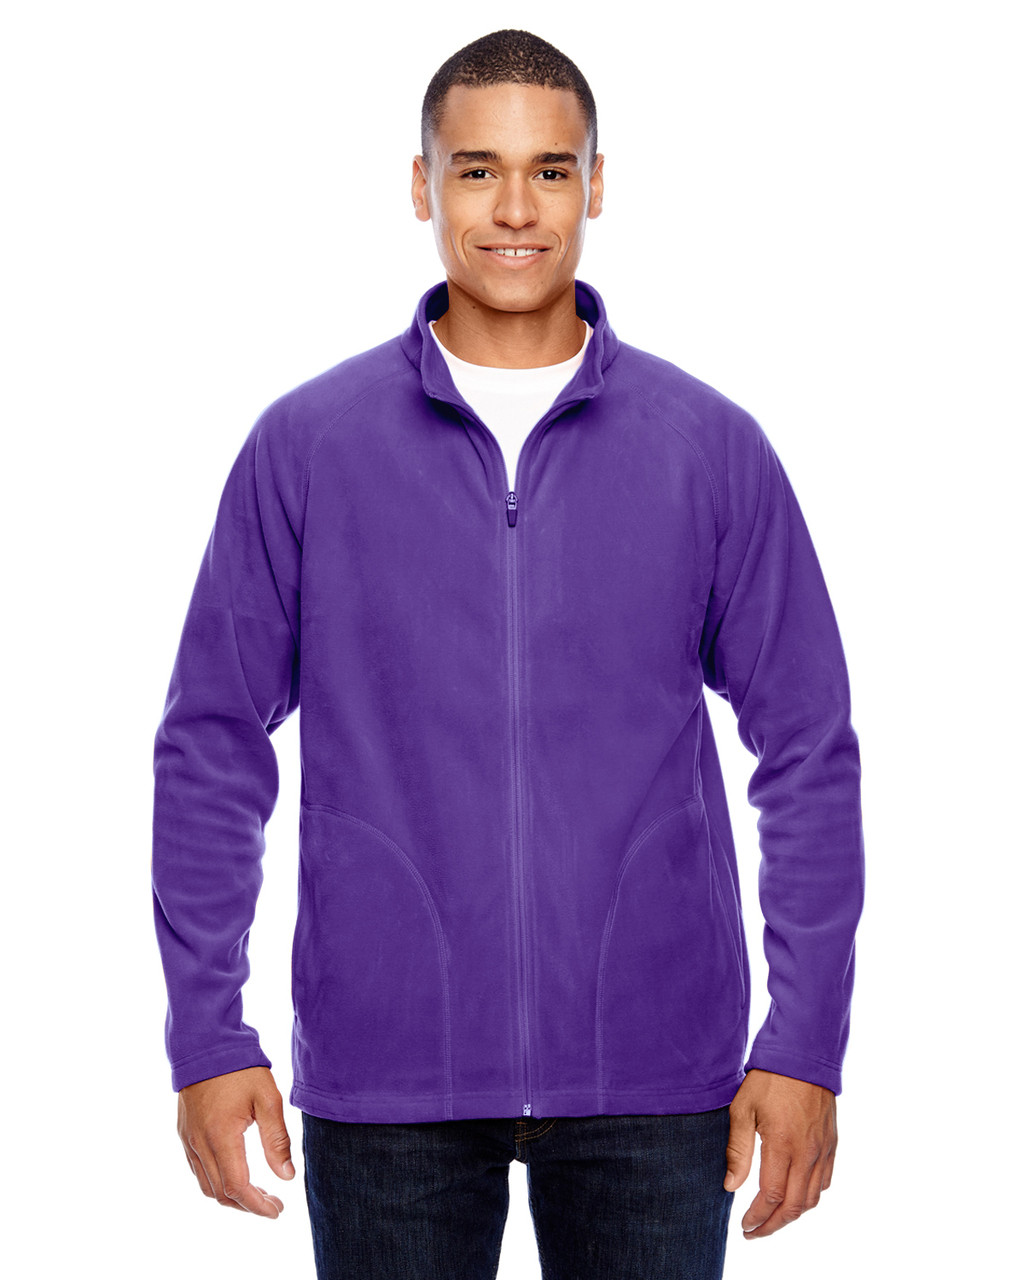 Purple - TT90 Team 365 Men's Campus Microfleece Jacket | BlankClothing.ca